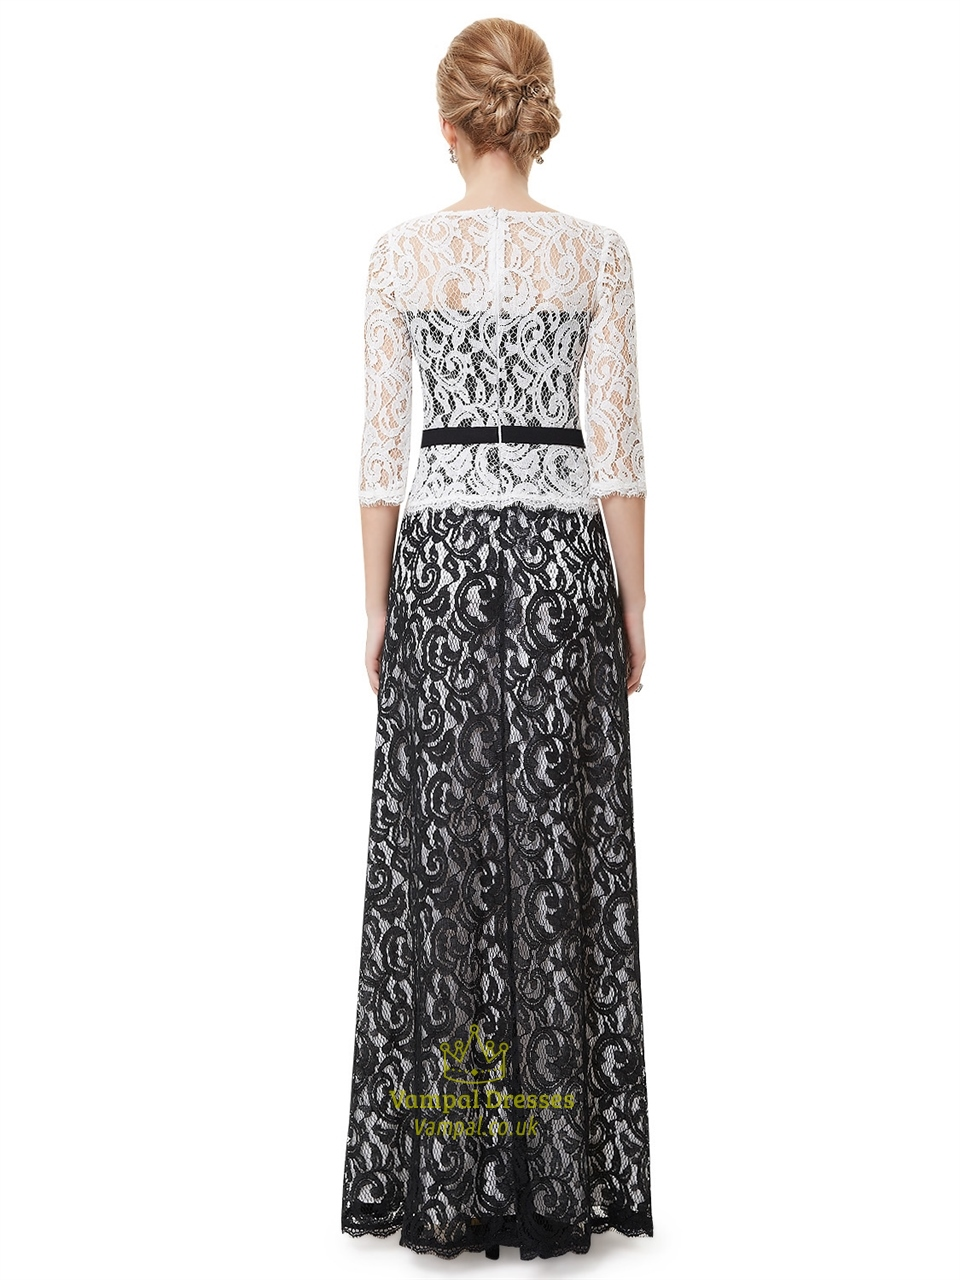 Black And White Lace Mother Of The Bride Dresses With 3/4 ...